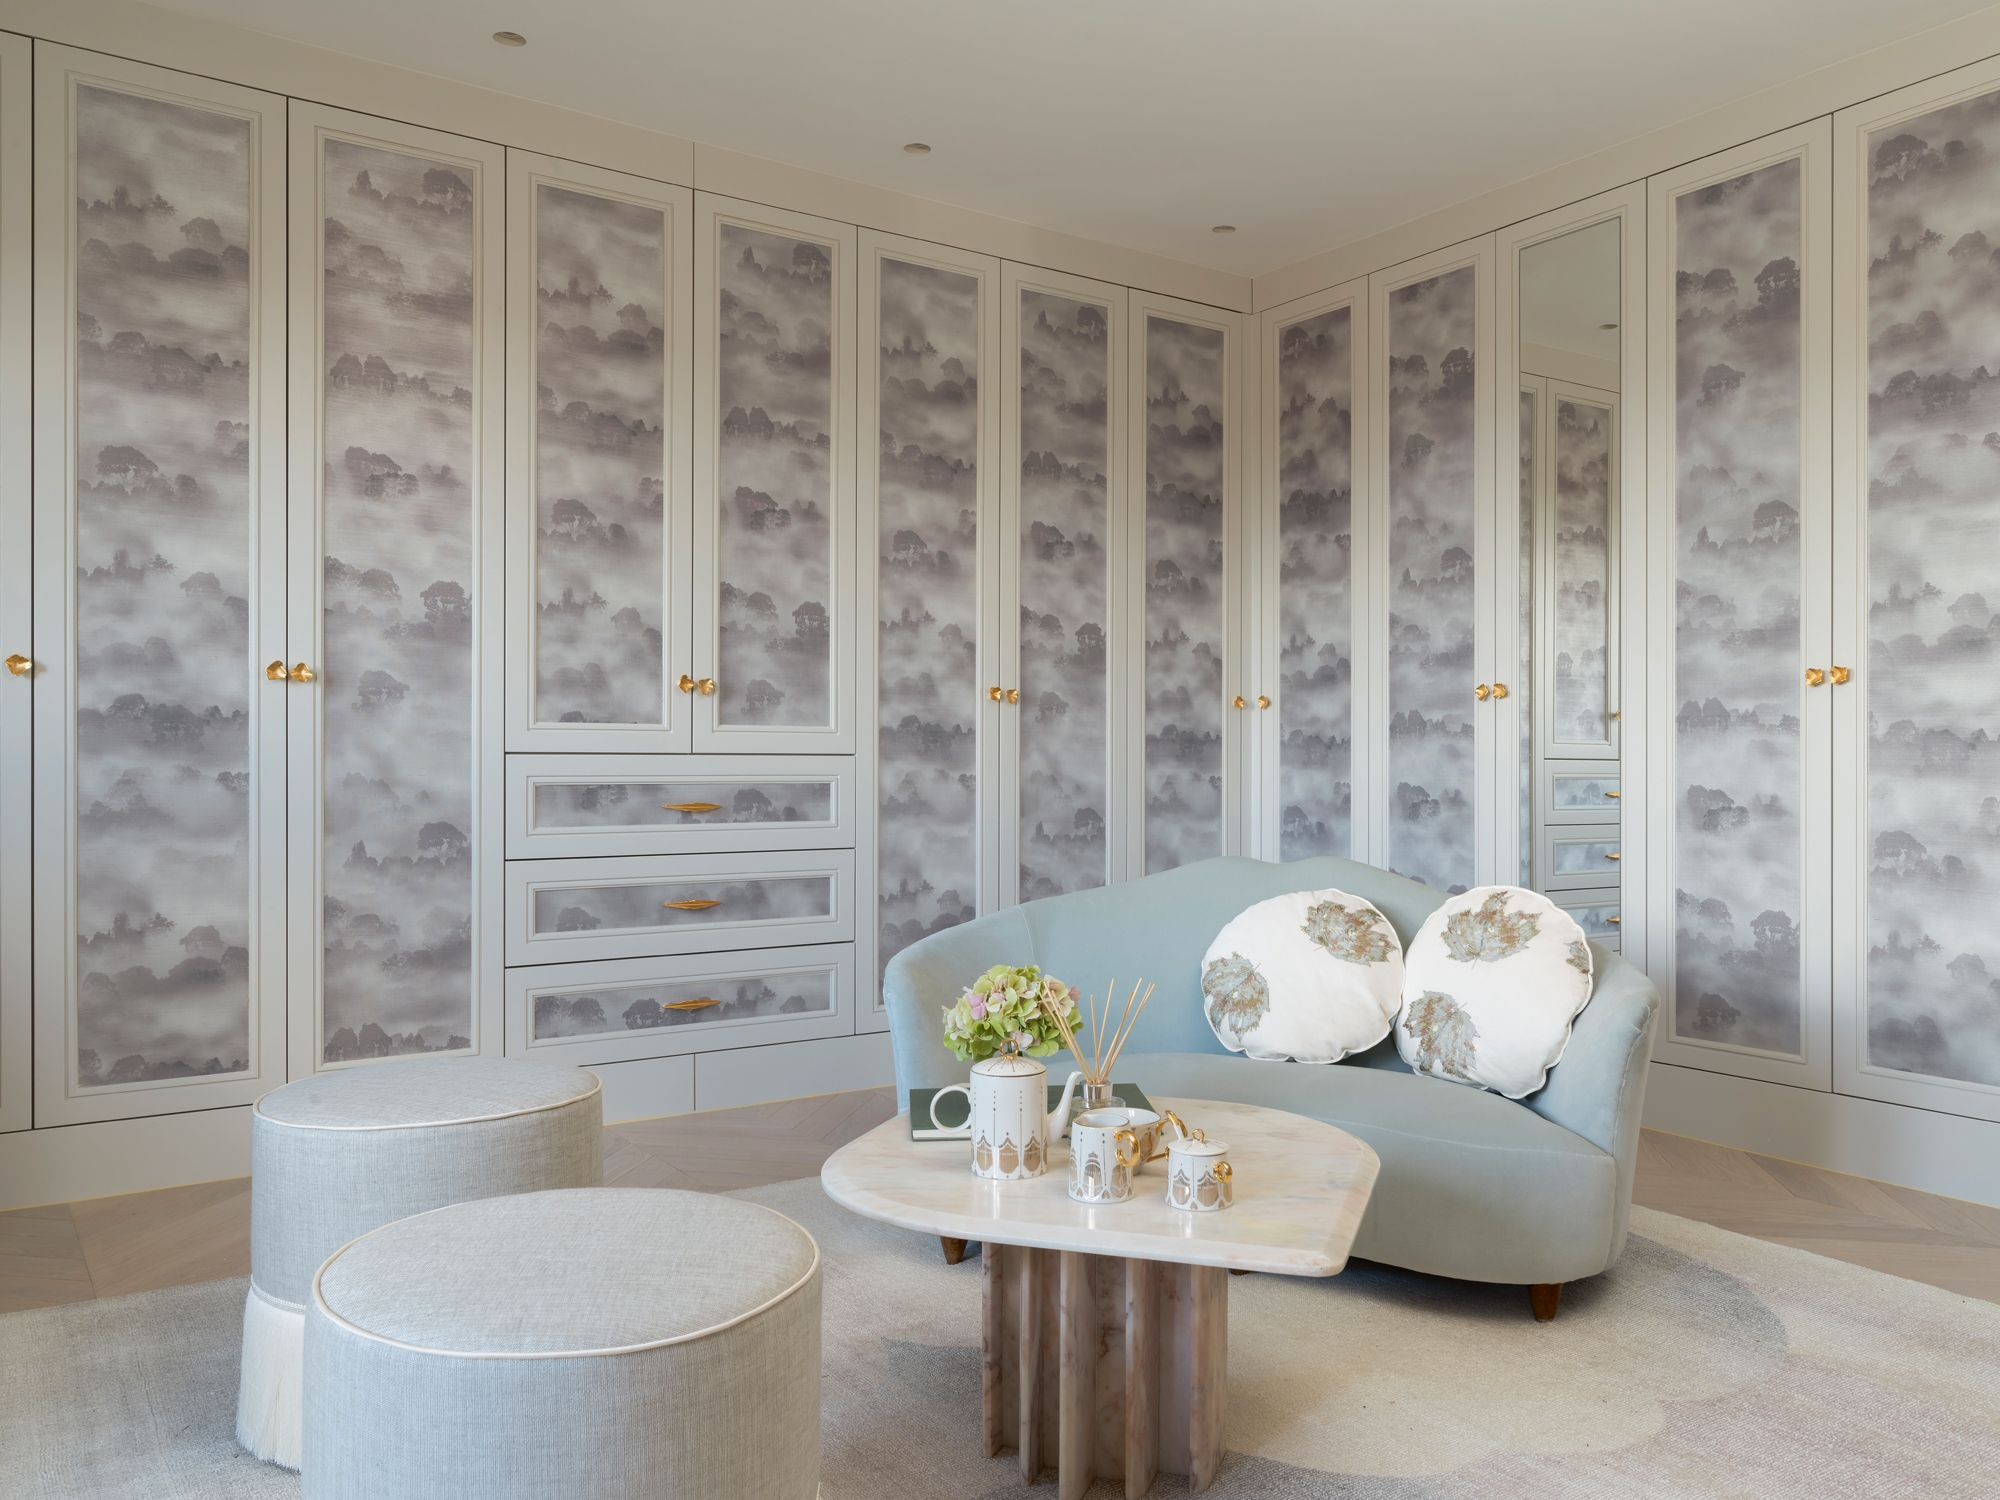 The master wardrobe features custom cabinetry with a dreamy pattern inspired by cloudy skies